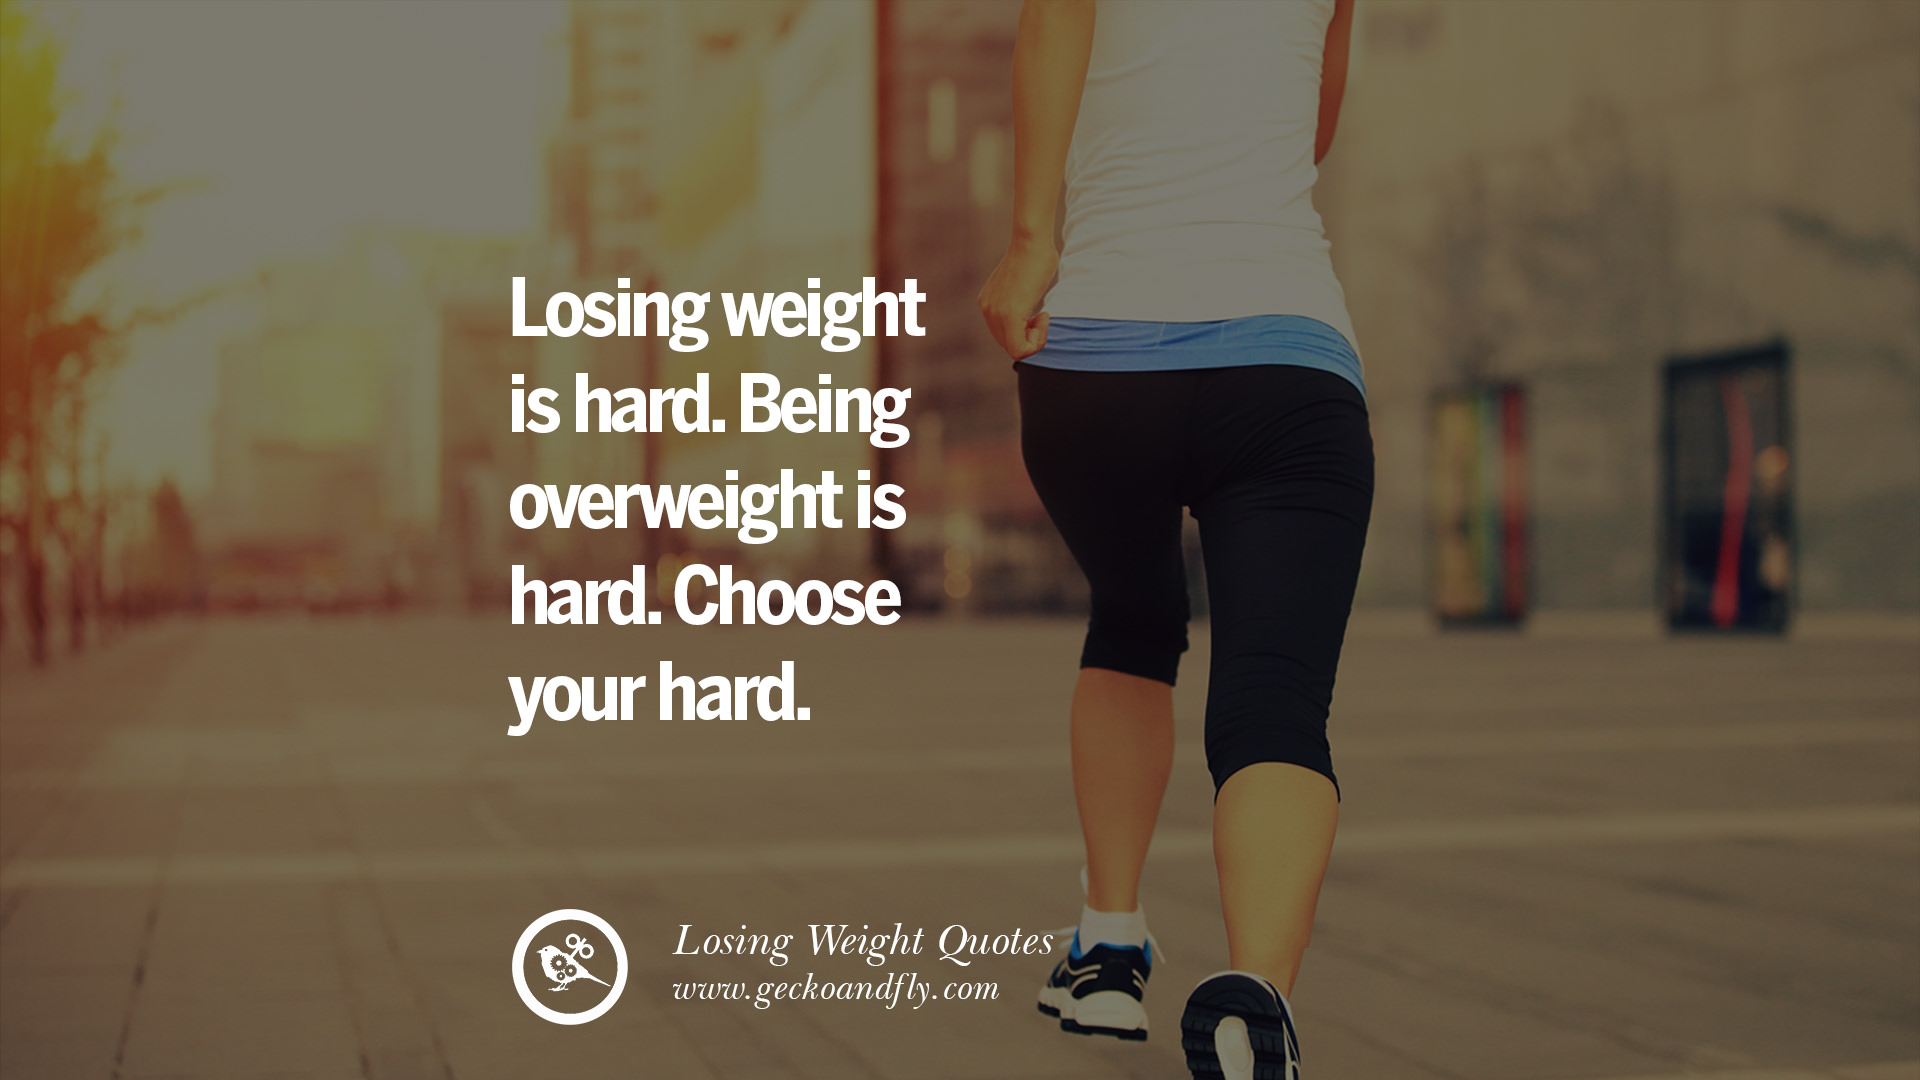 Goal Wallpapers Quotes To Stay Fit 40 Motivational Quotes On Losing Weight On Diet And Never